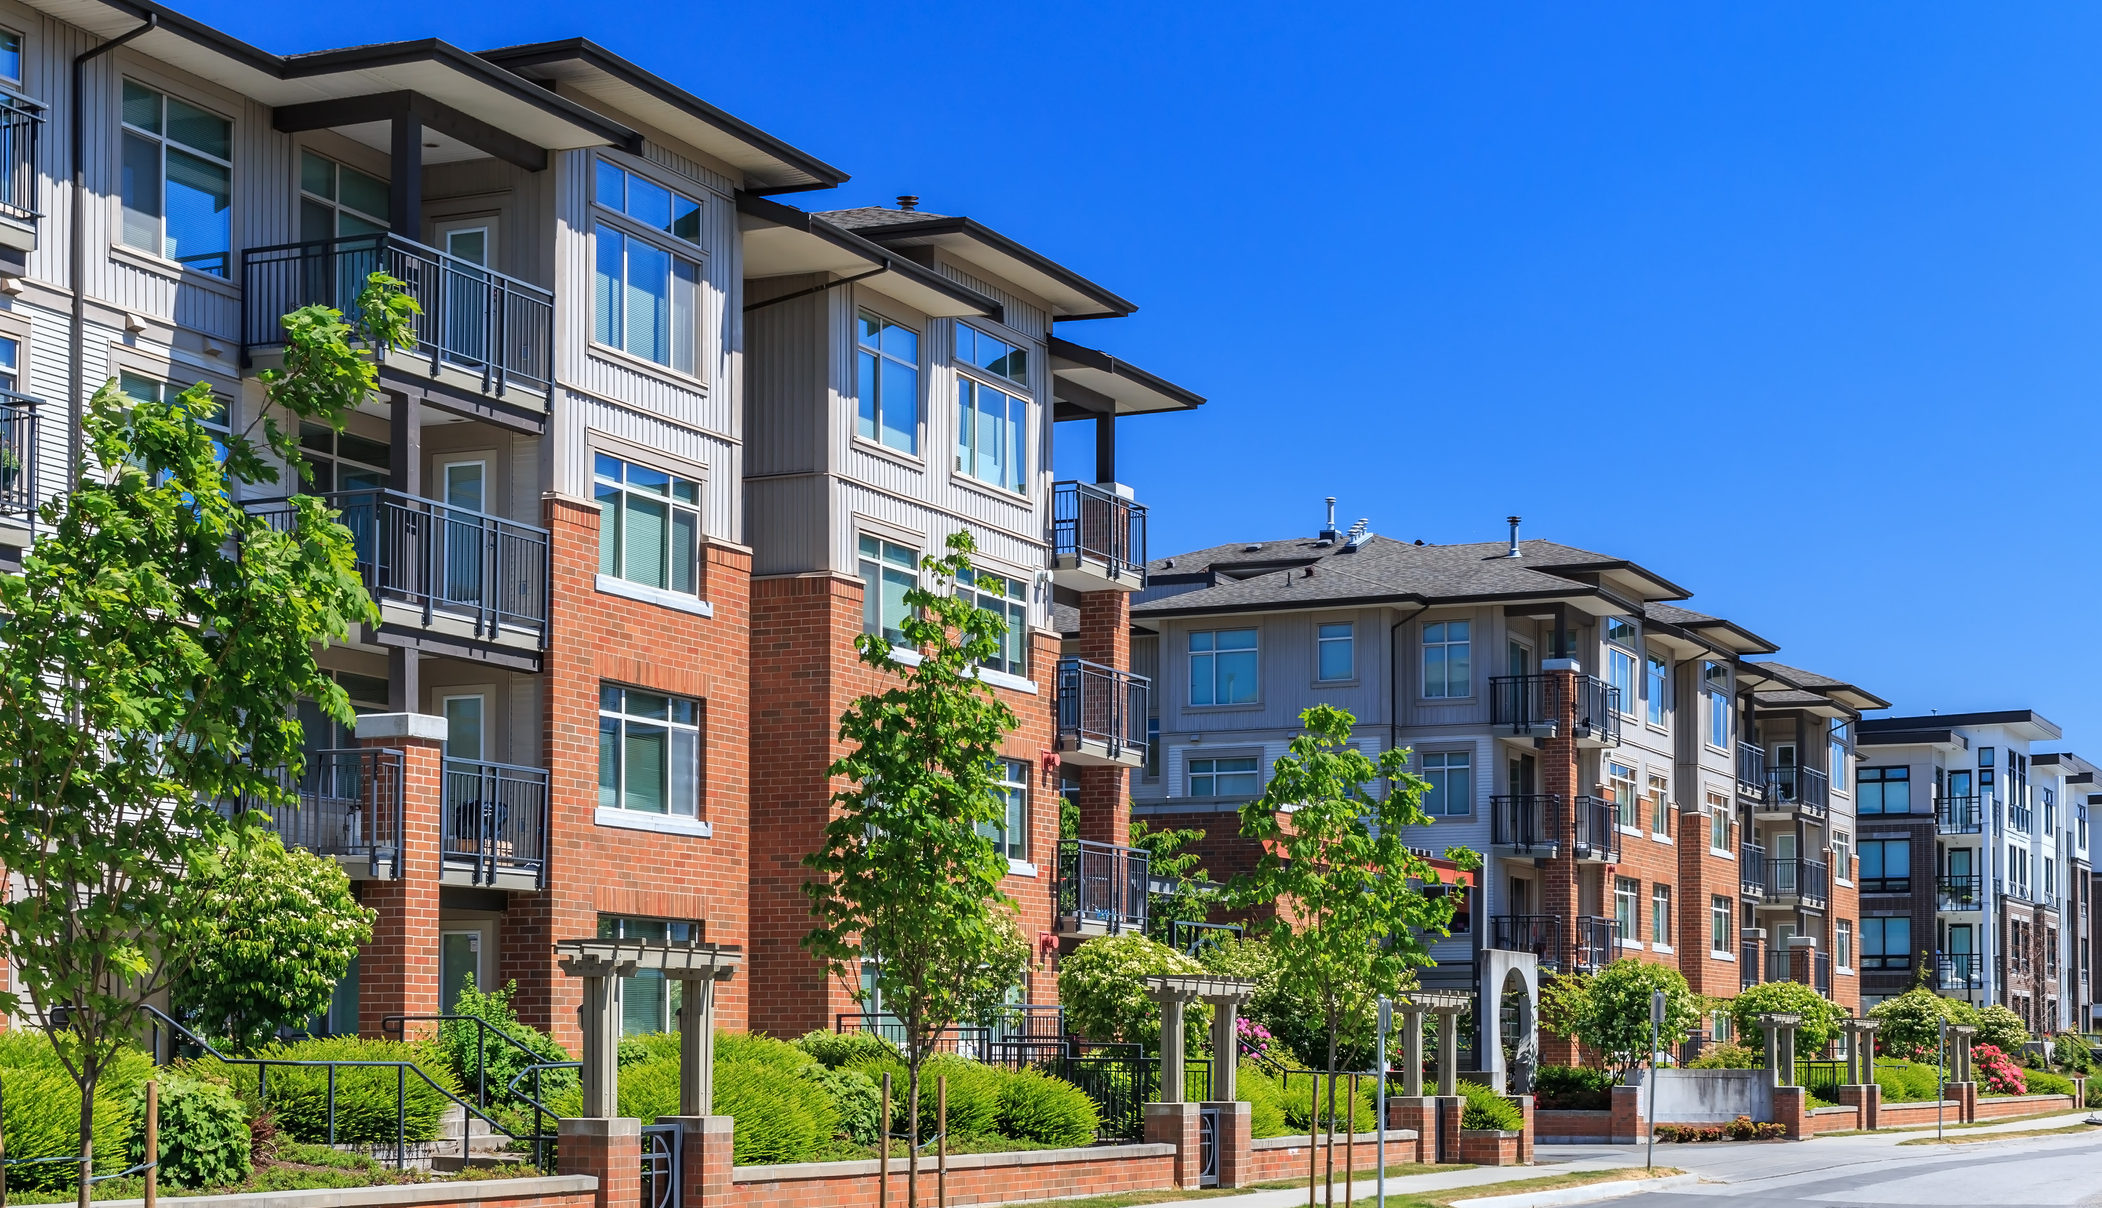 Commercial Real Estate Acworth